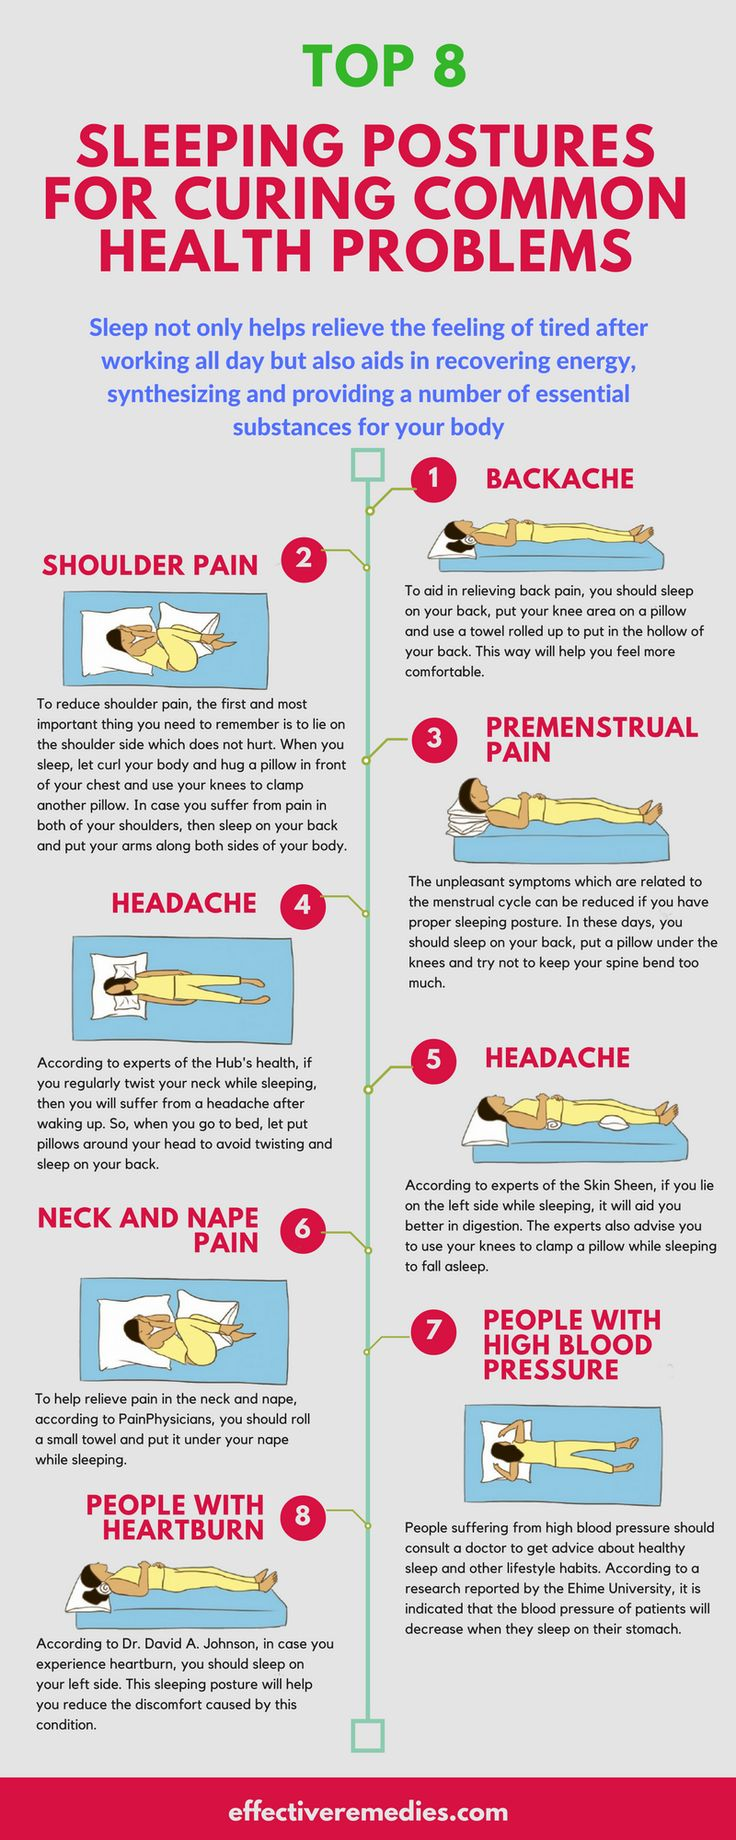 TOP 8 SLEEPING POSTURES FOR CURING COMMON HEALTH PROBLEMS